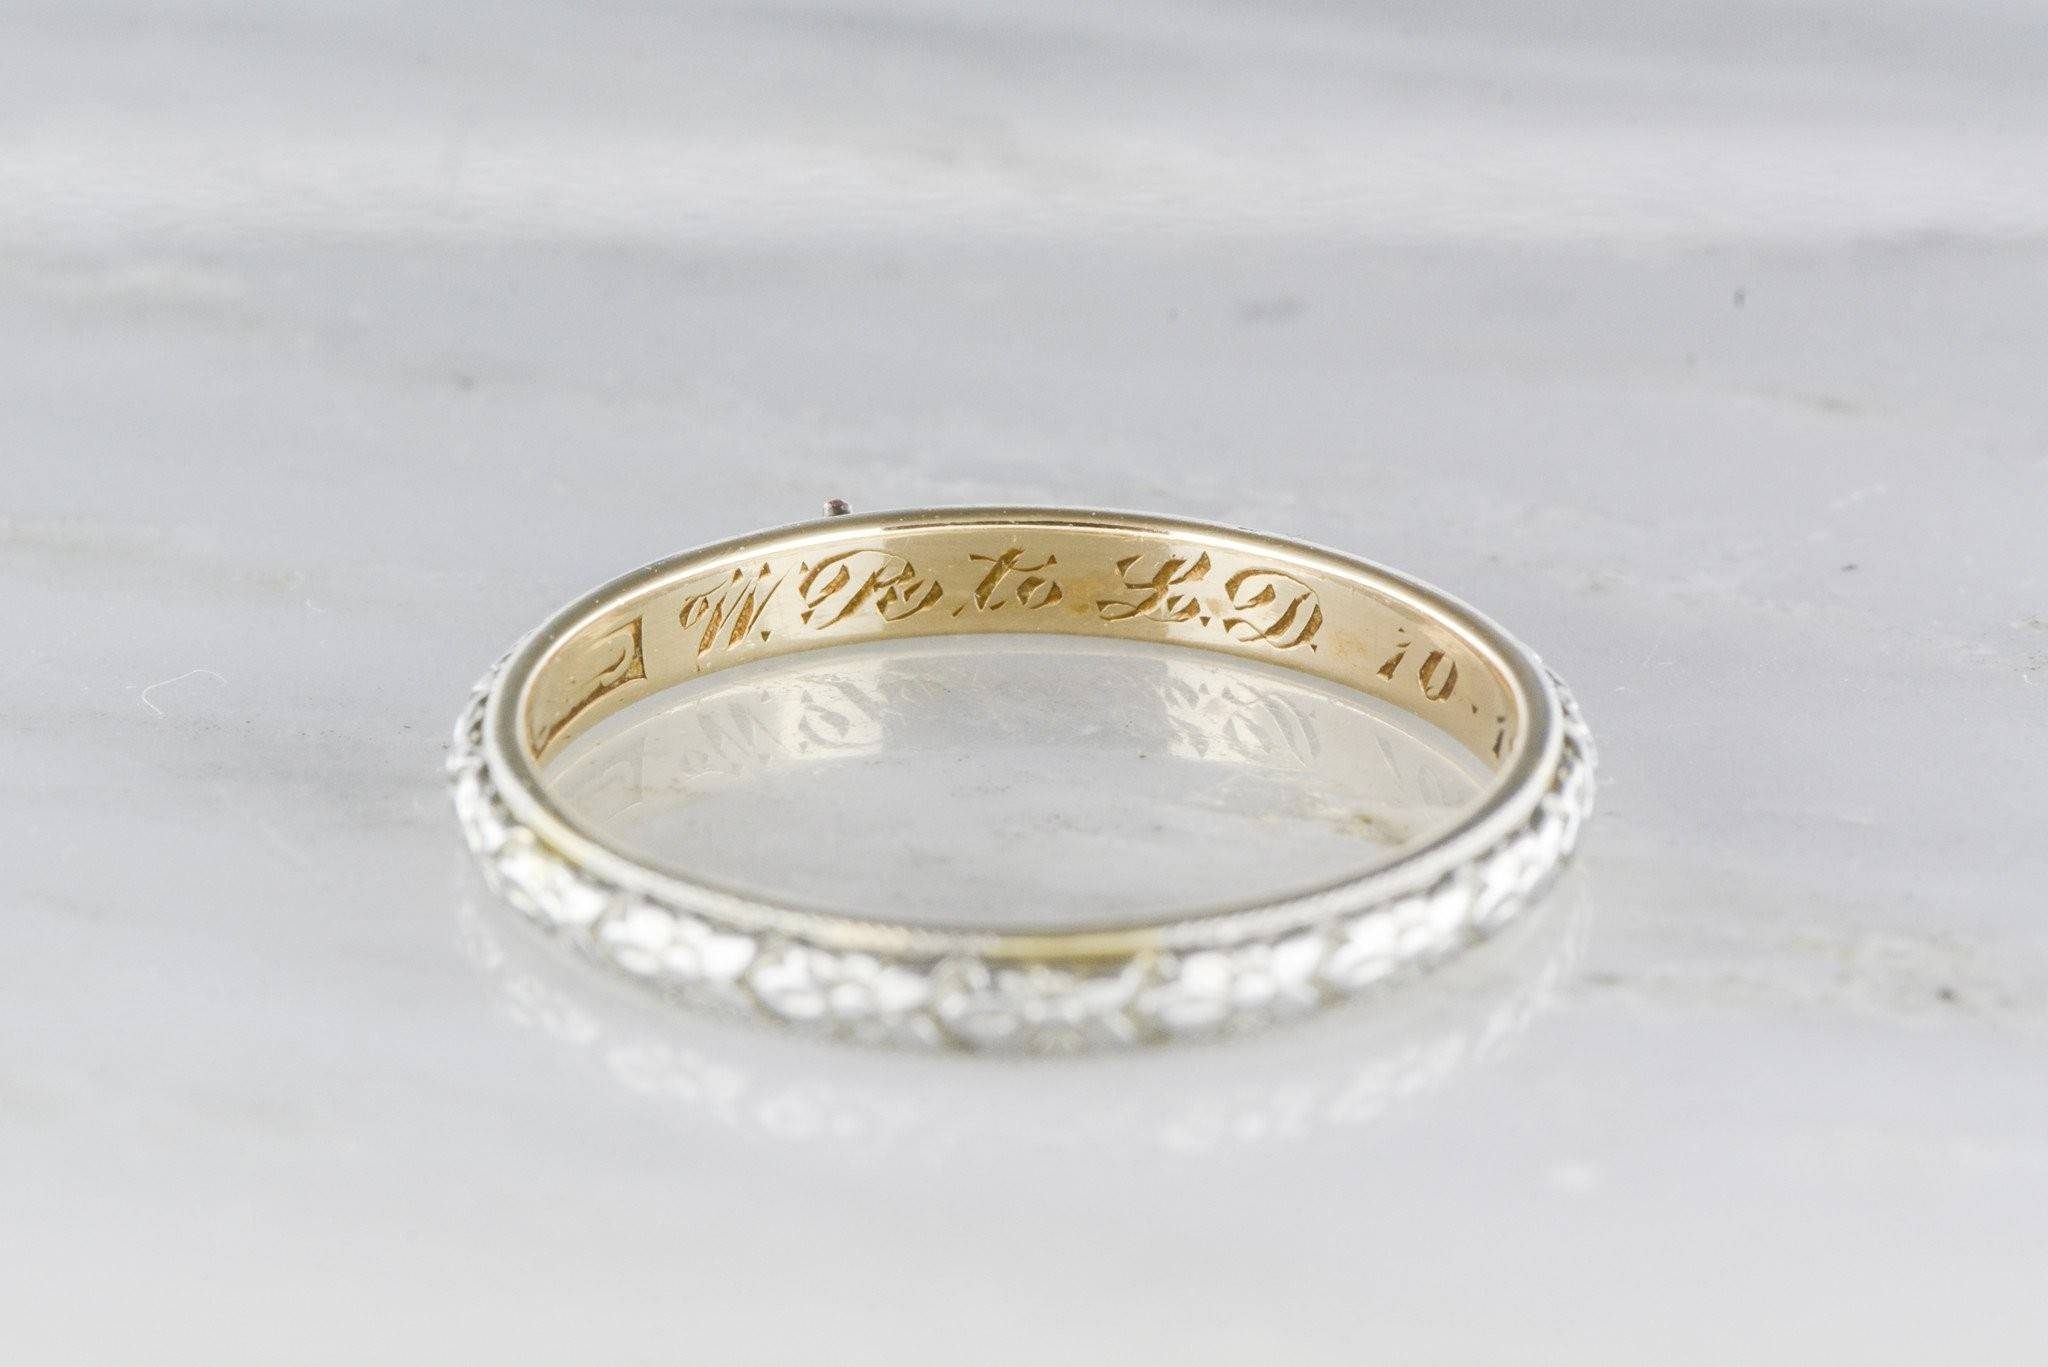 Engraving On Mens Wedding Rings Beautiful Wedding Rings Wedding Within Mens Wedding Bands With Engraving (View 4 of 15)